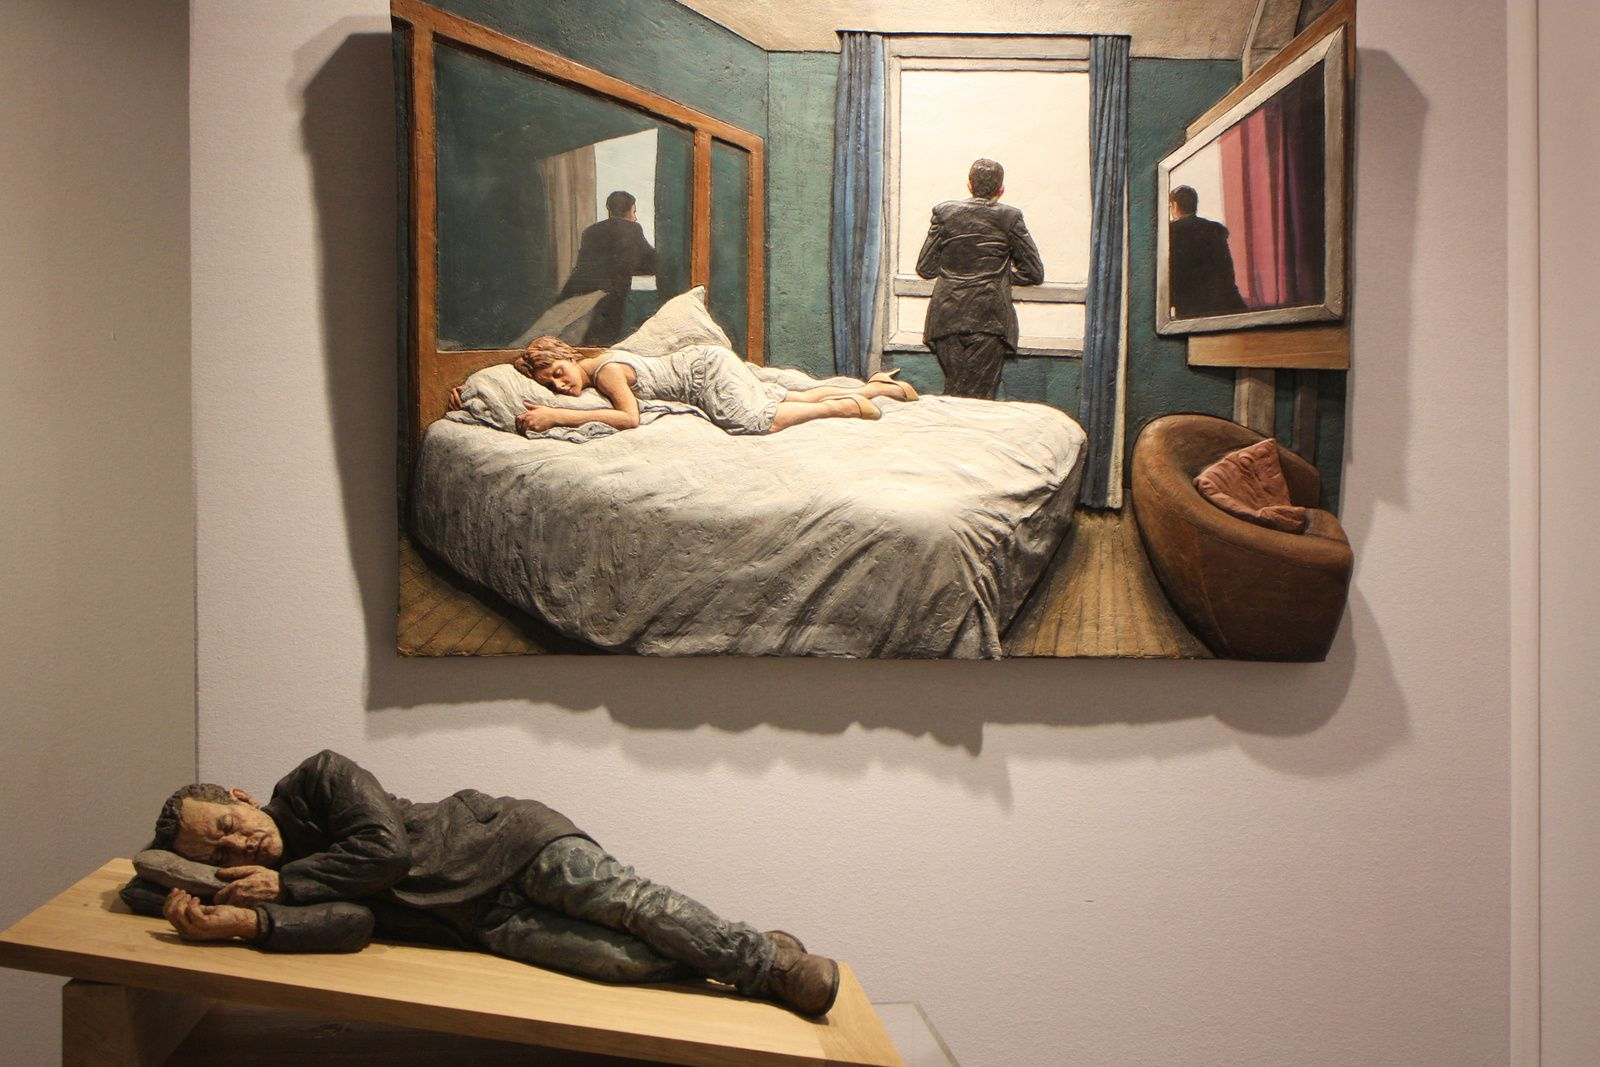 """Ramp"", 2012  et ""Hotel room"", 2008 de (Galerie LKFF) Photo Eric Simon"